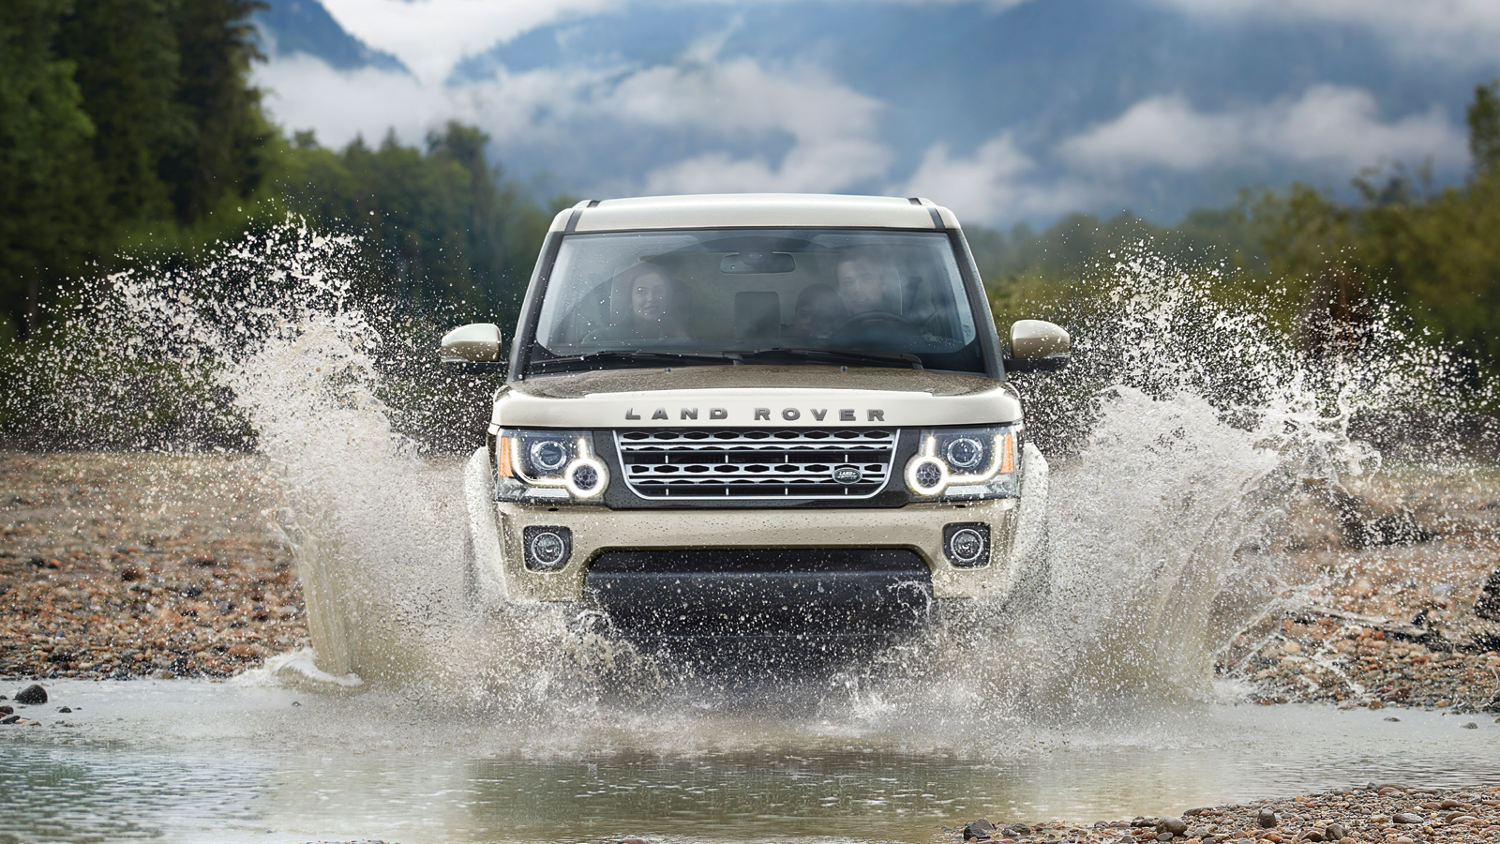 Comparison Land Rover Lr4 Suv 2015 Vs Toyota Land